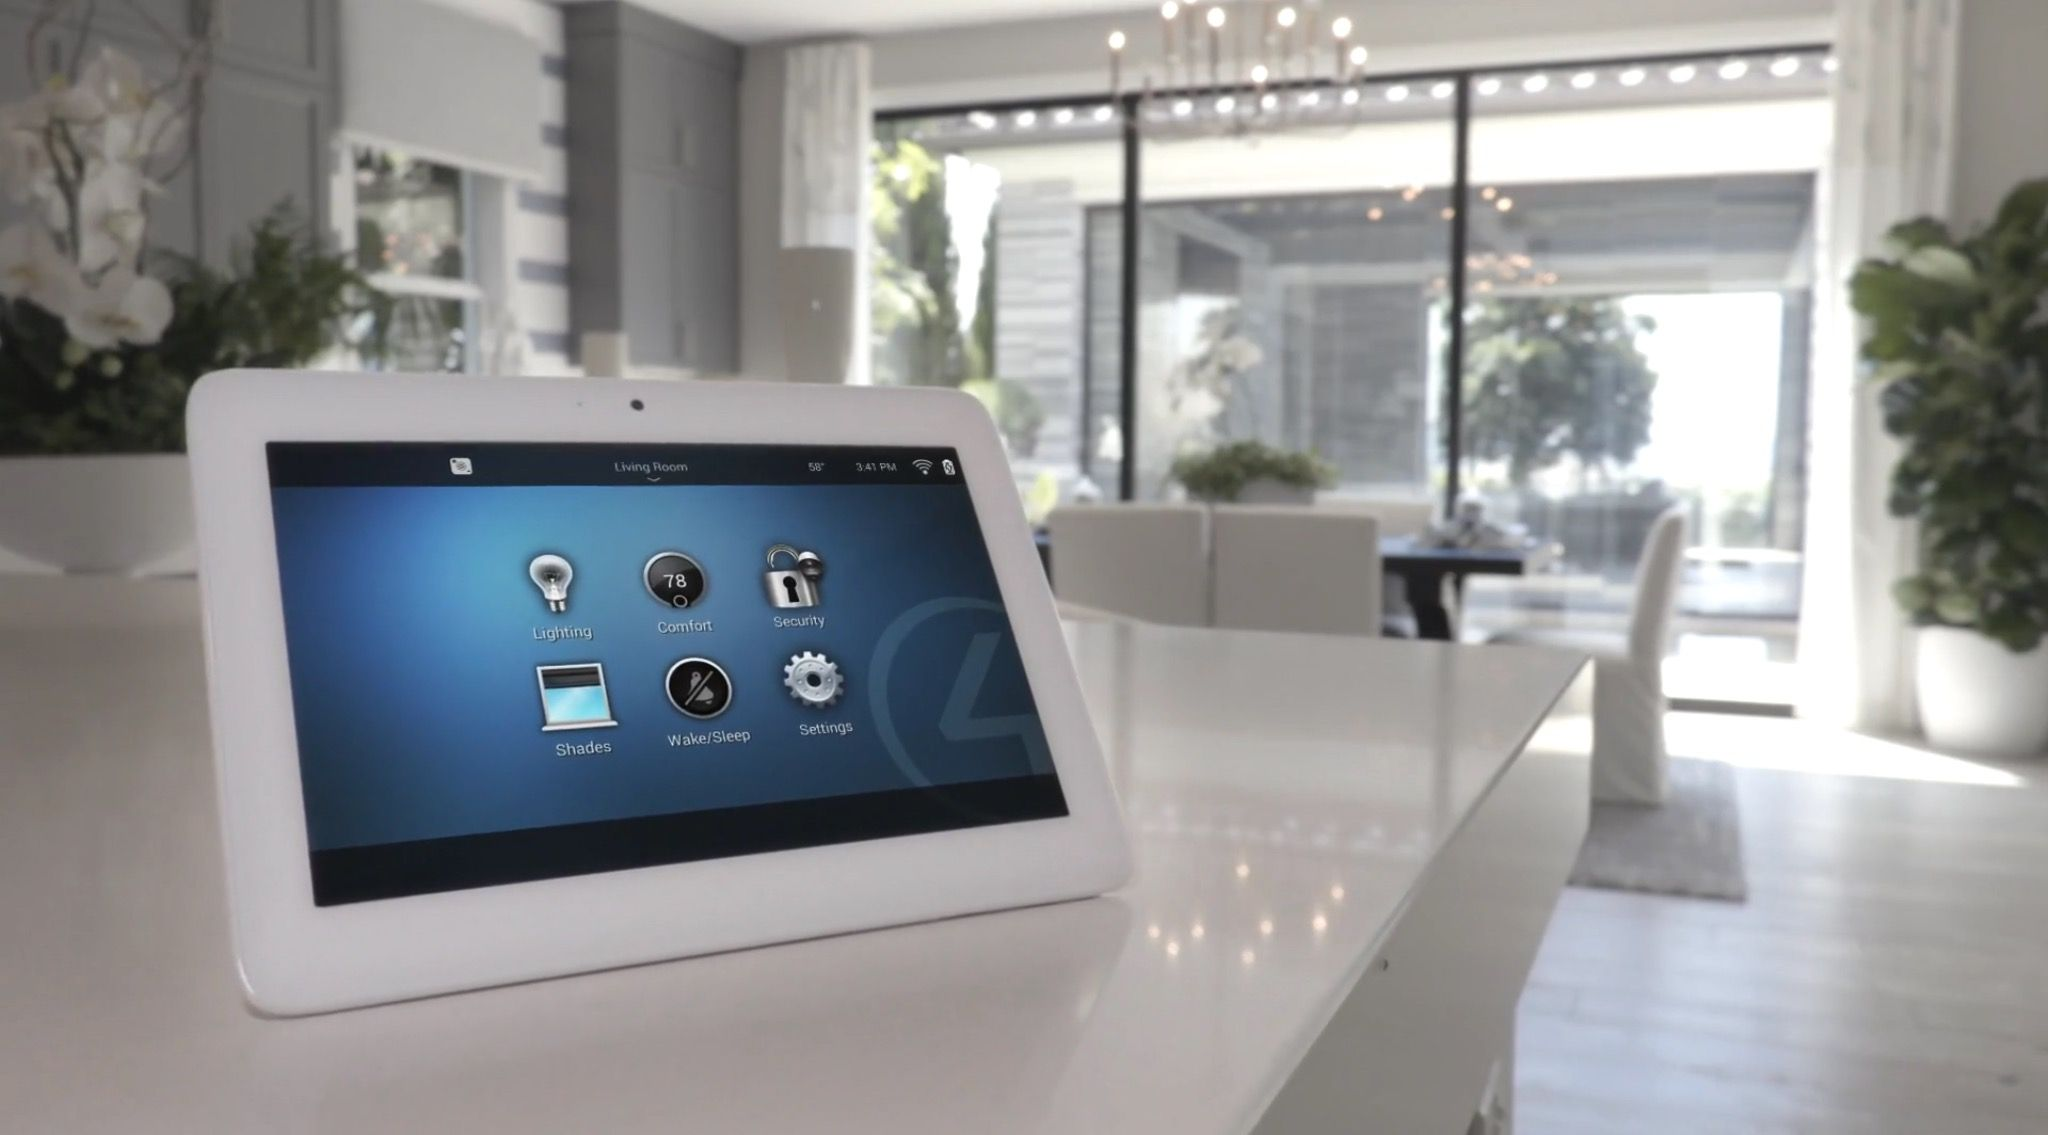 The Control4 Ca 1 Controller Enables Everyone To Experience The Best In Smart Home Control With It S Low Cost Smart Home Security Home Tech Smart Home Control